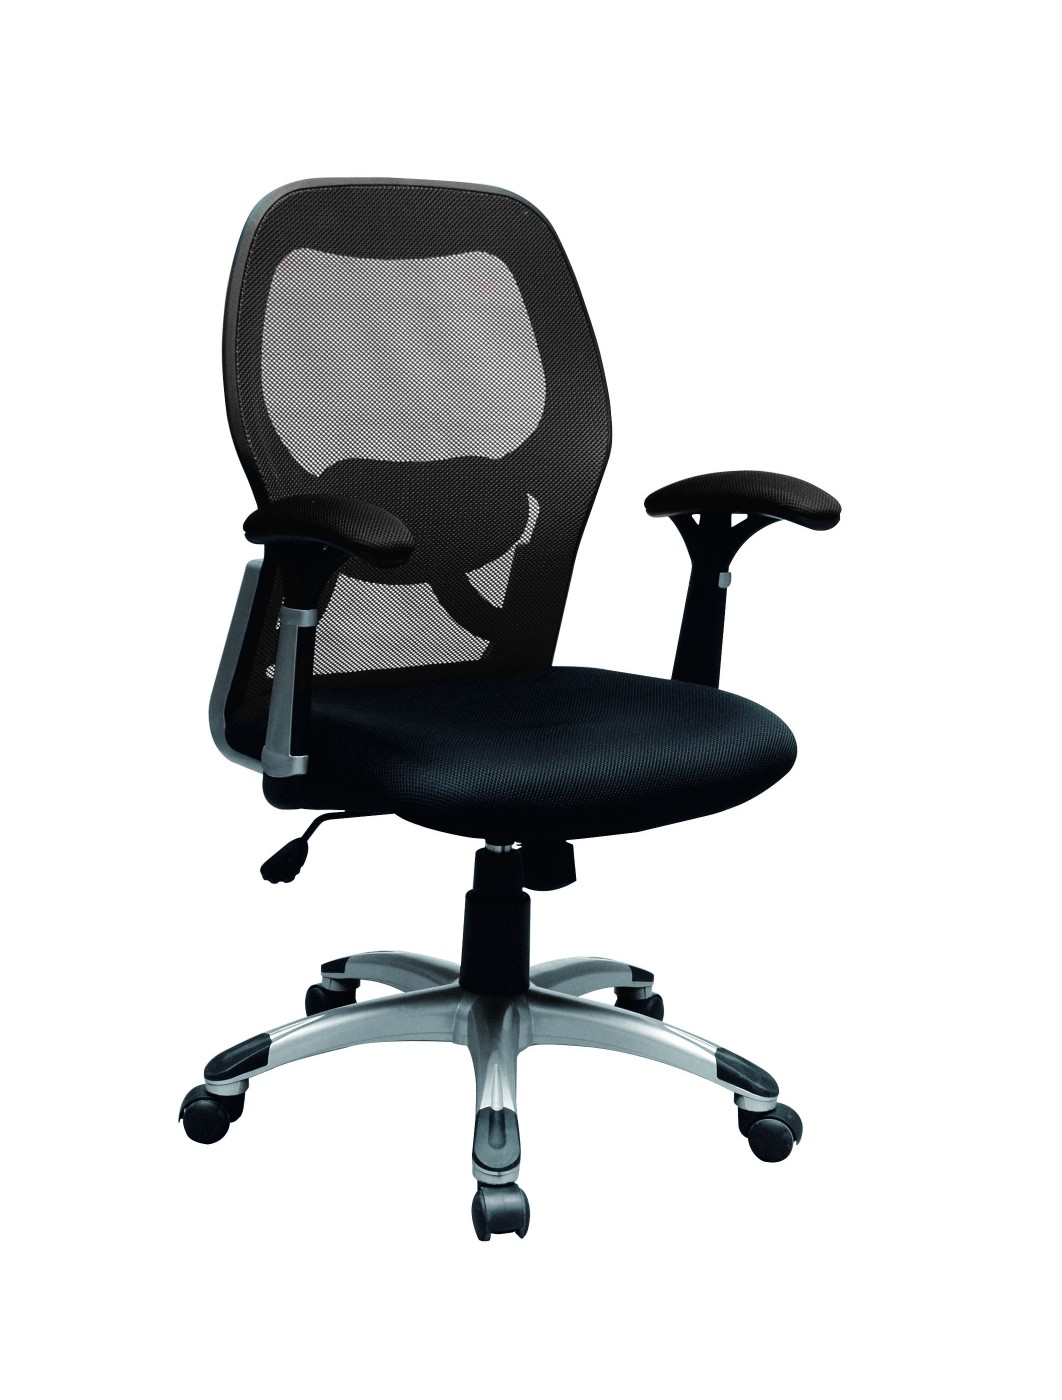 Office Chairs Auckland Bcm A528 121 Office Furniture